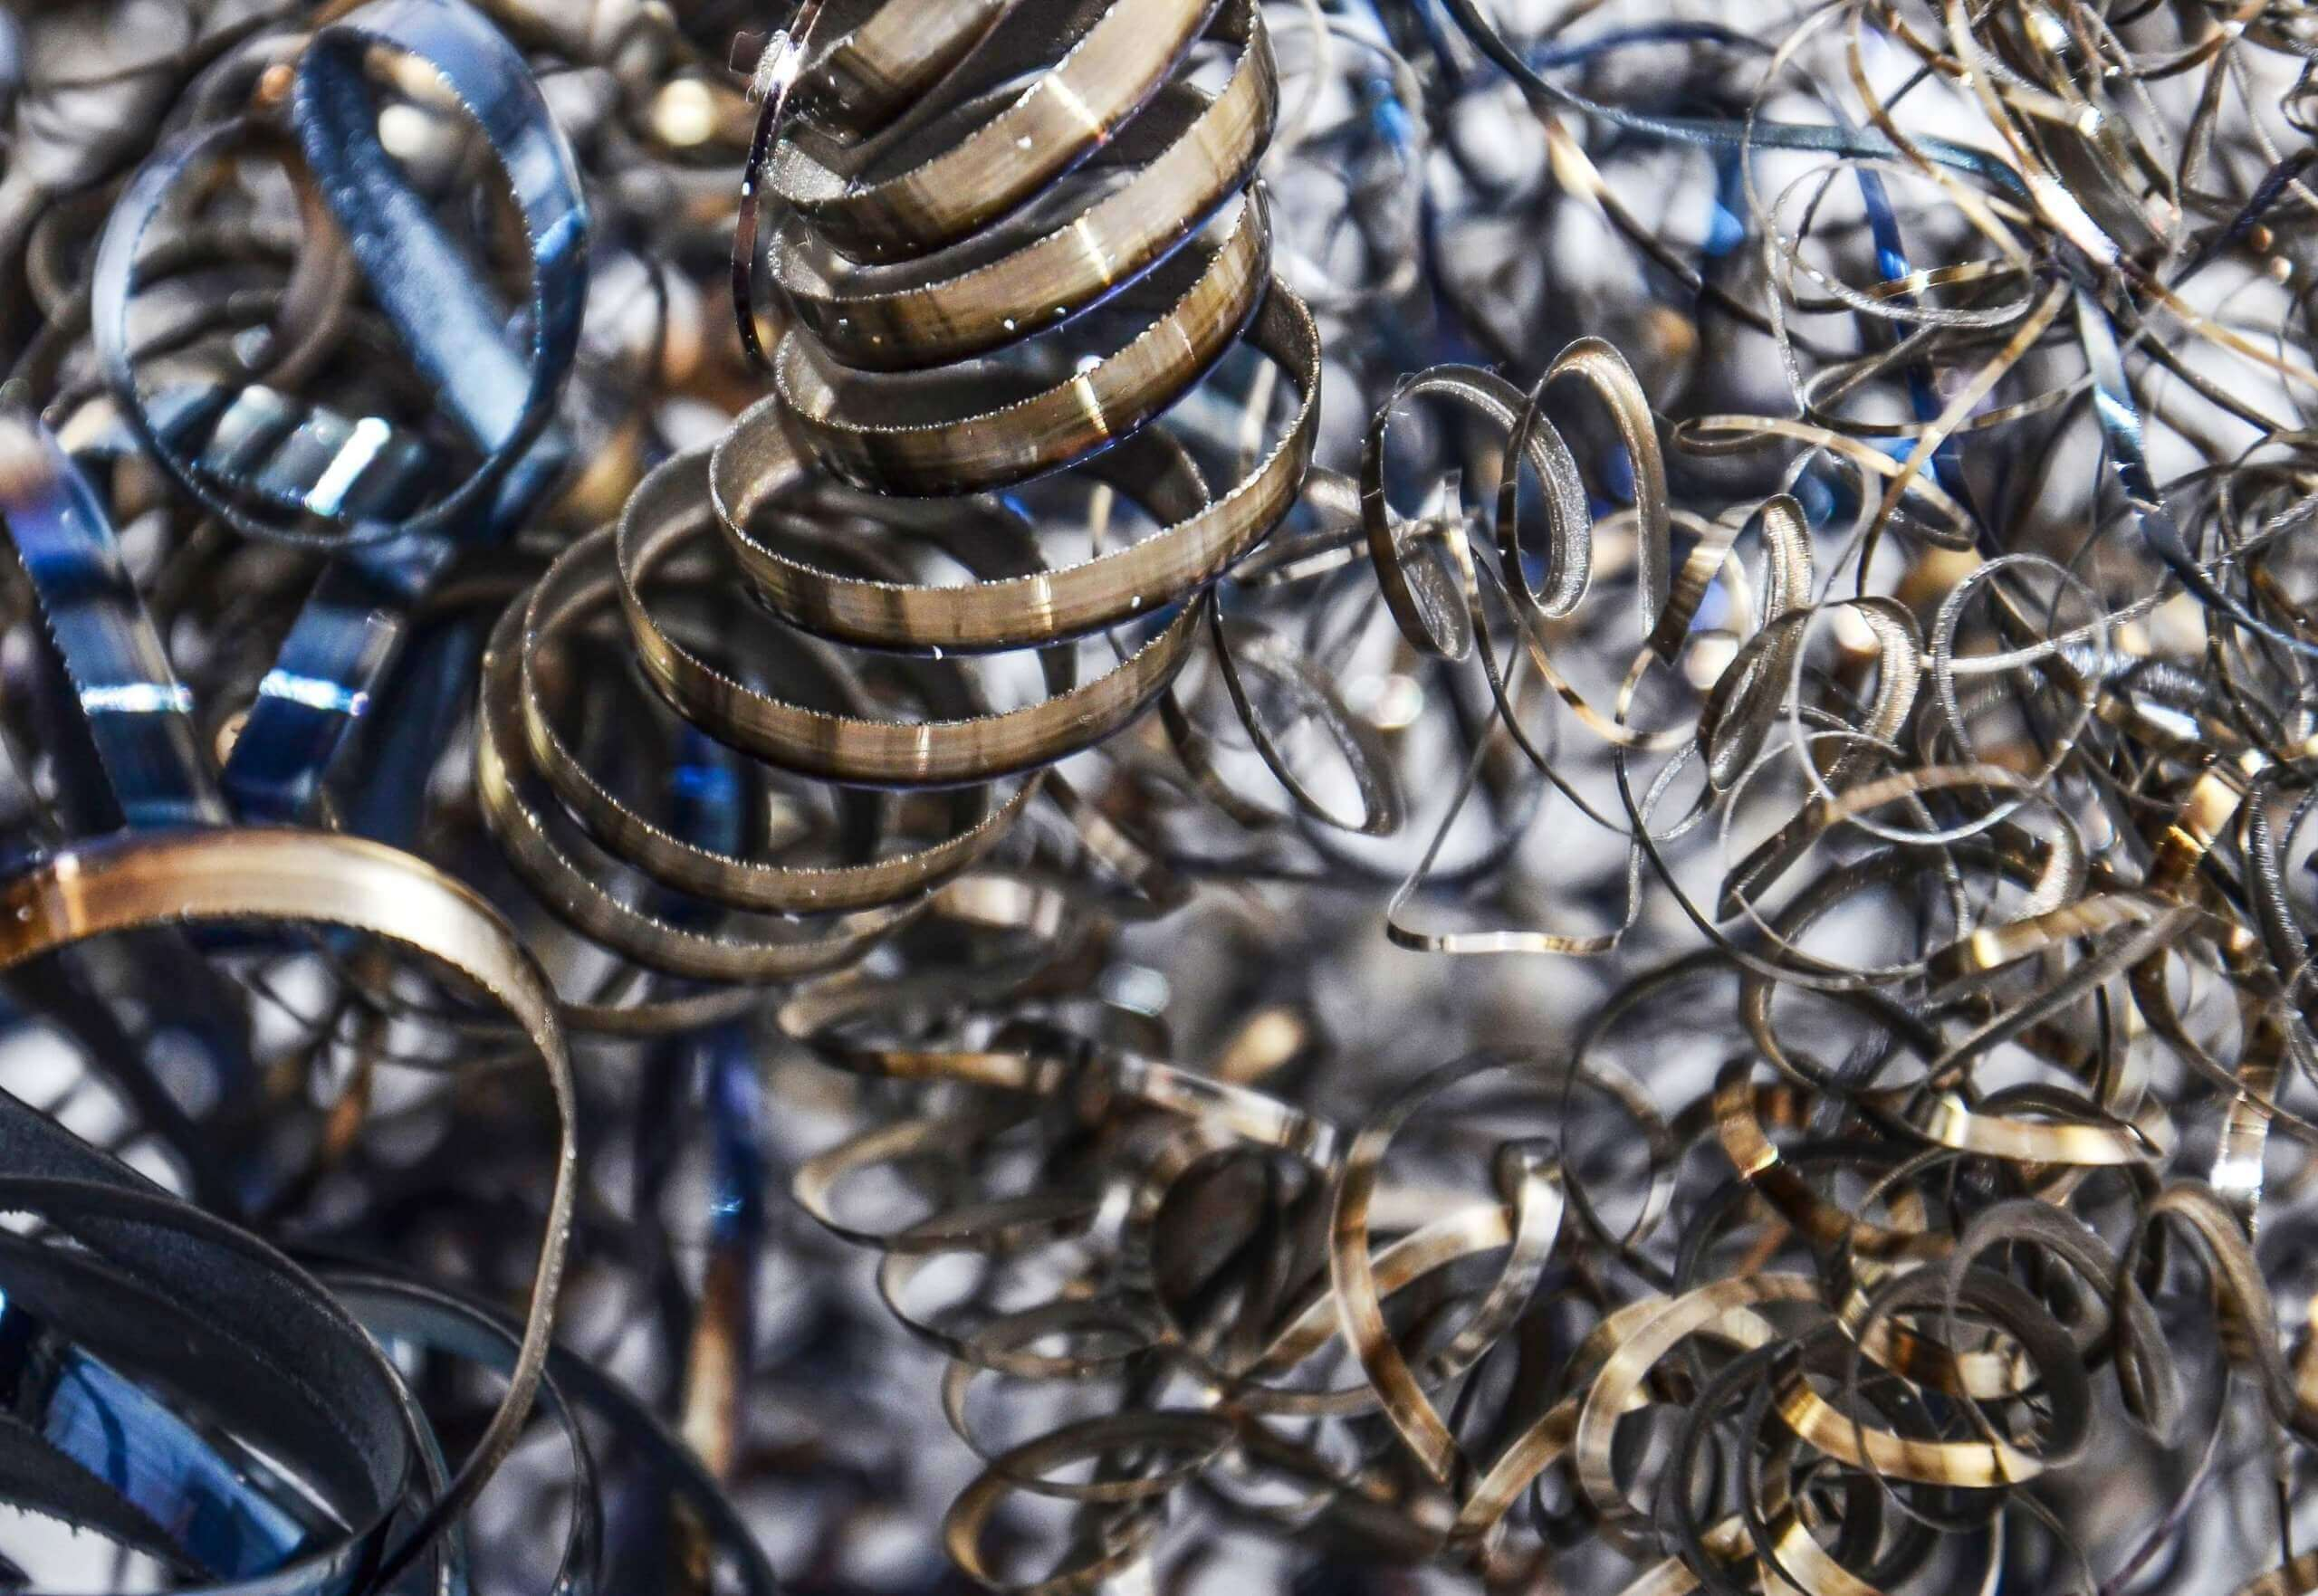 Metal shavings before the recycling process